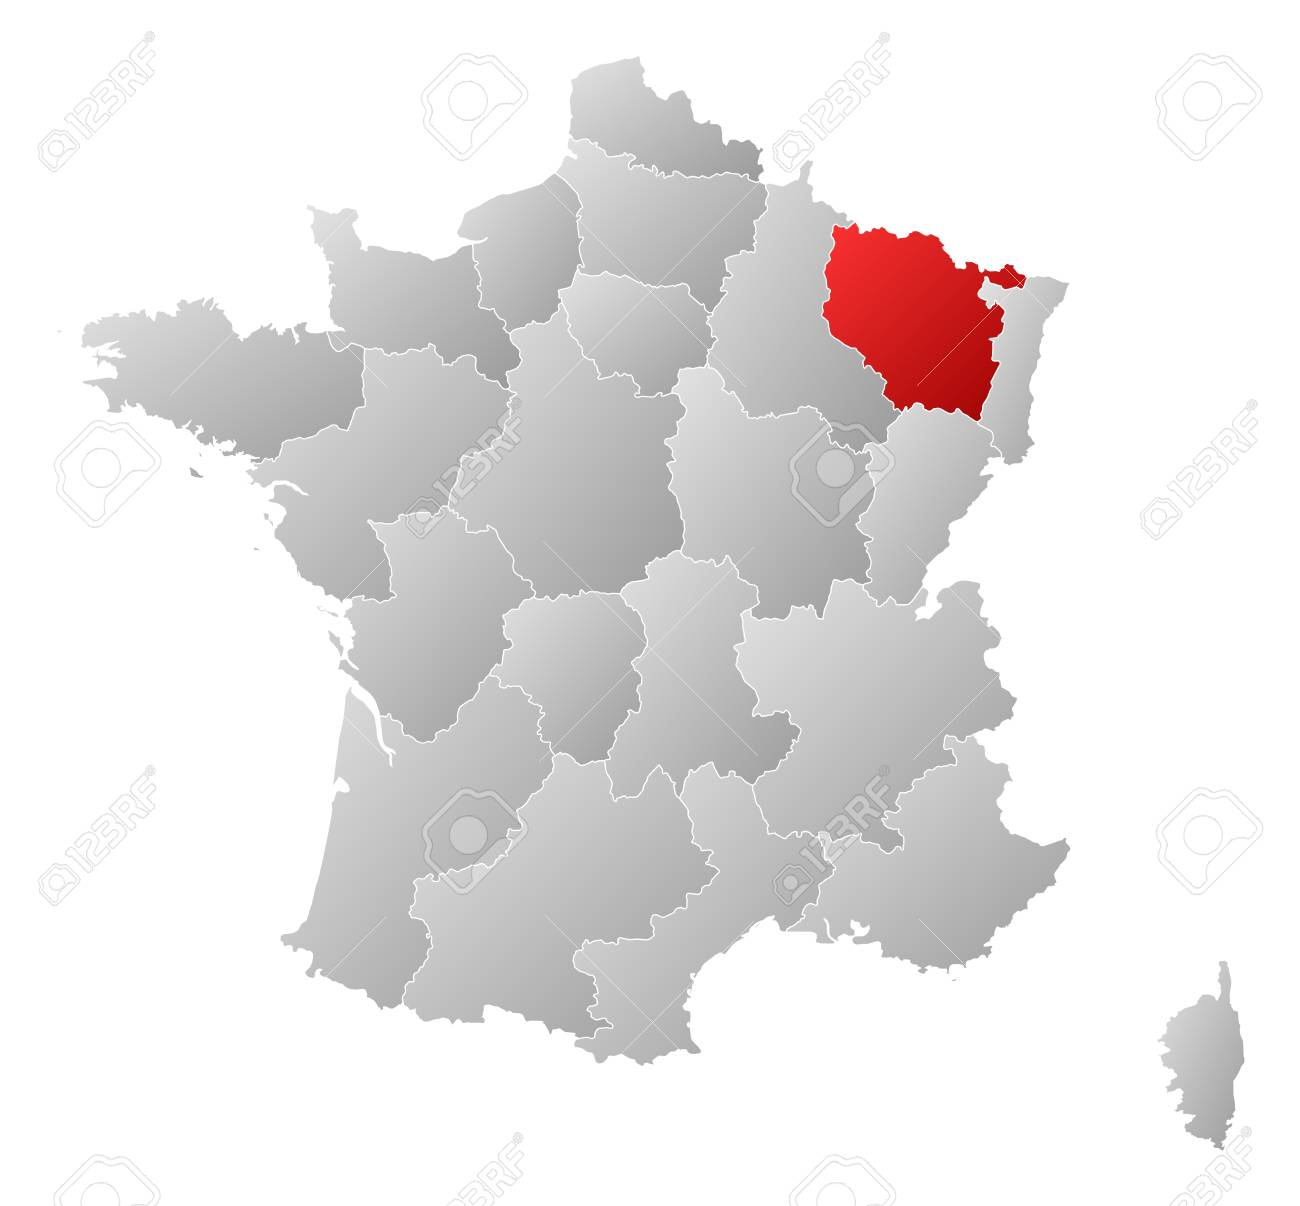 Image of: Political Map Of France With The Several Regions Where Lorraine Royalty Free Cliparts Vectors And Stock Illustration Image 11566312